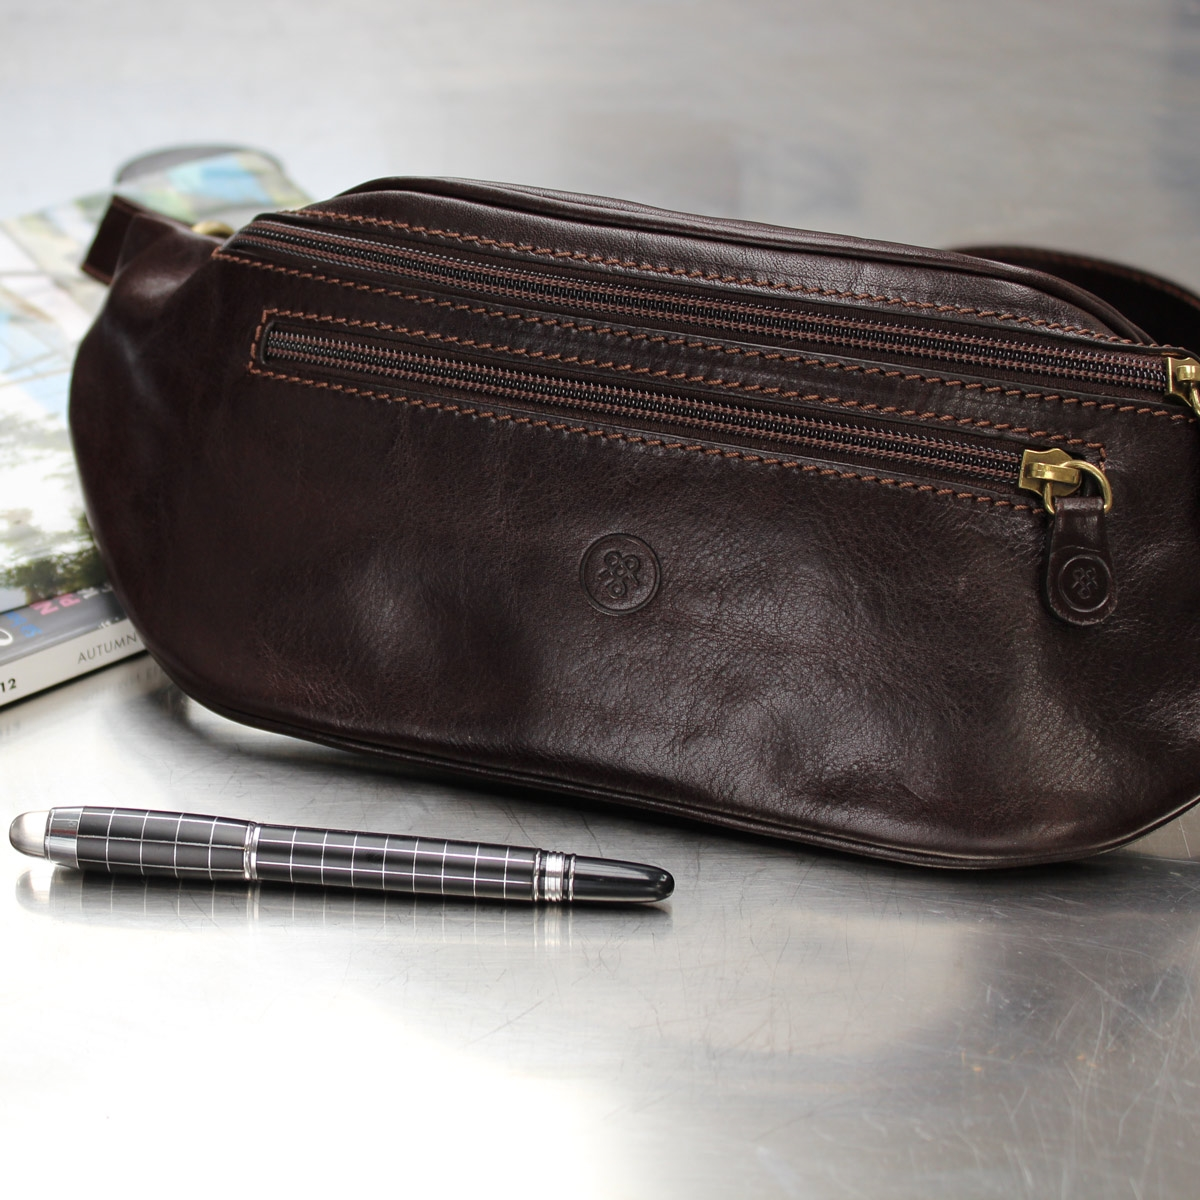 a6be8cf8cc The Centolla Luxury Italian Leather Bum Bag by Maxwell Scott